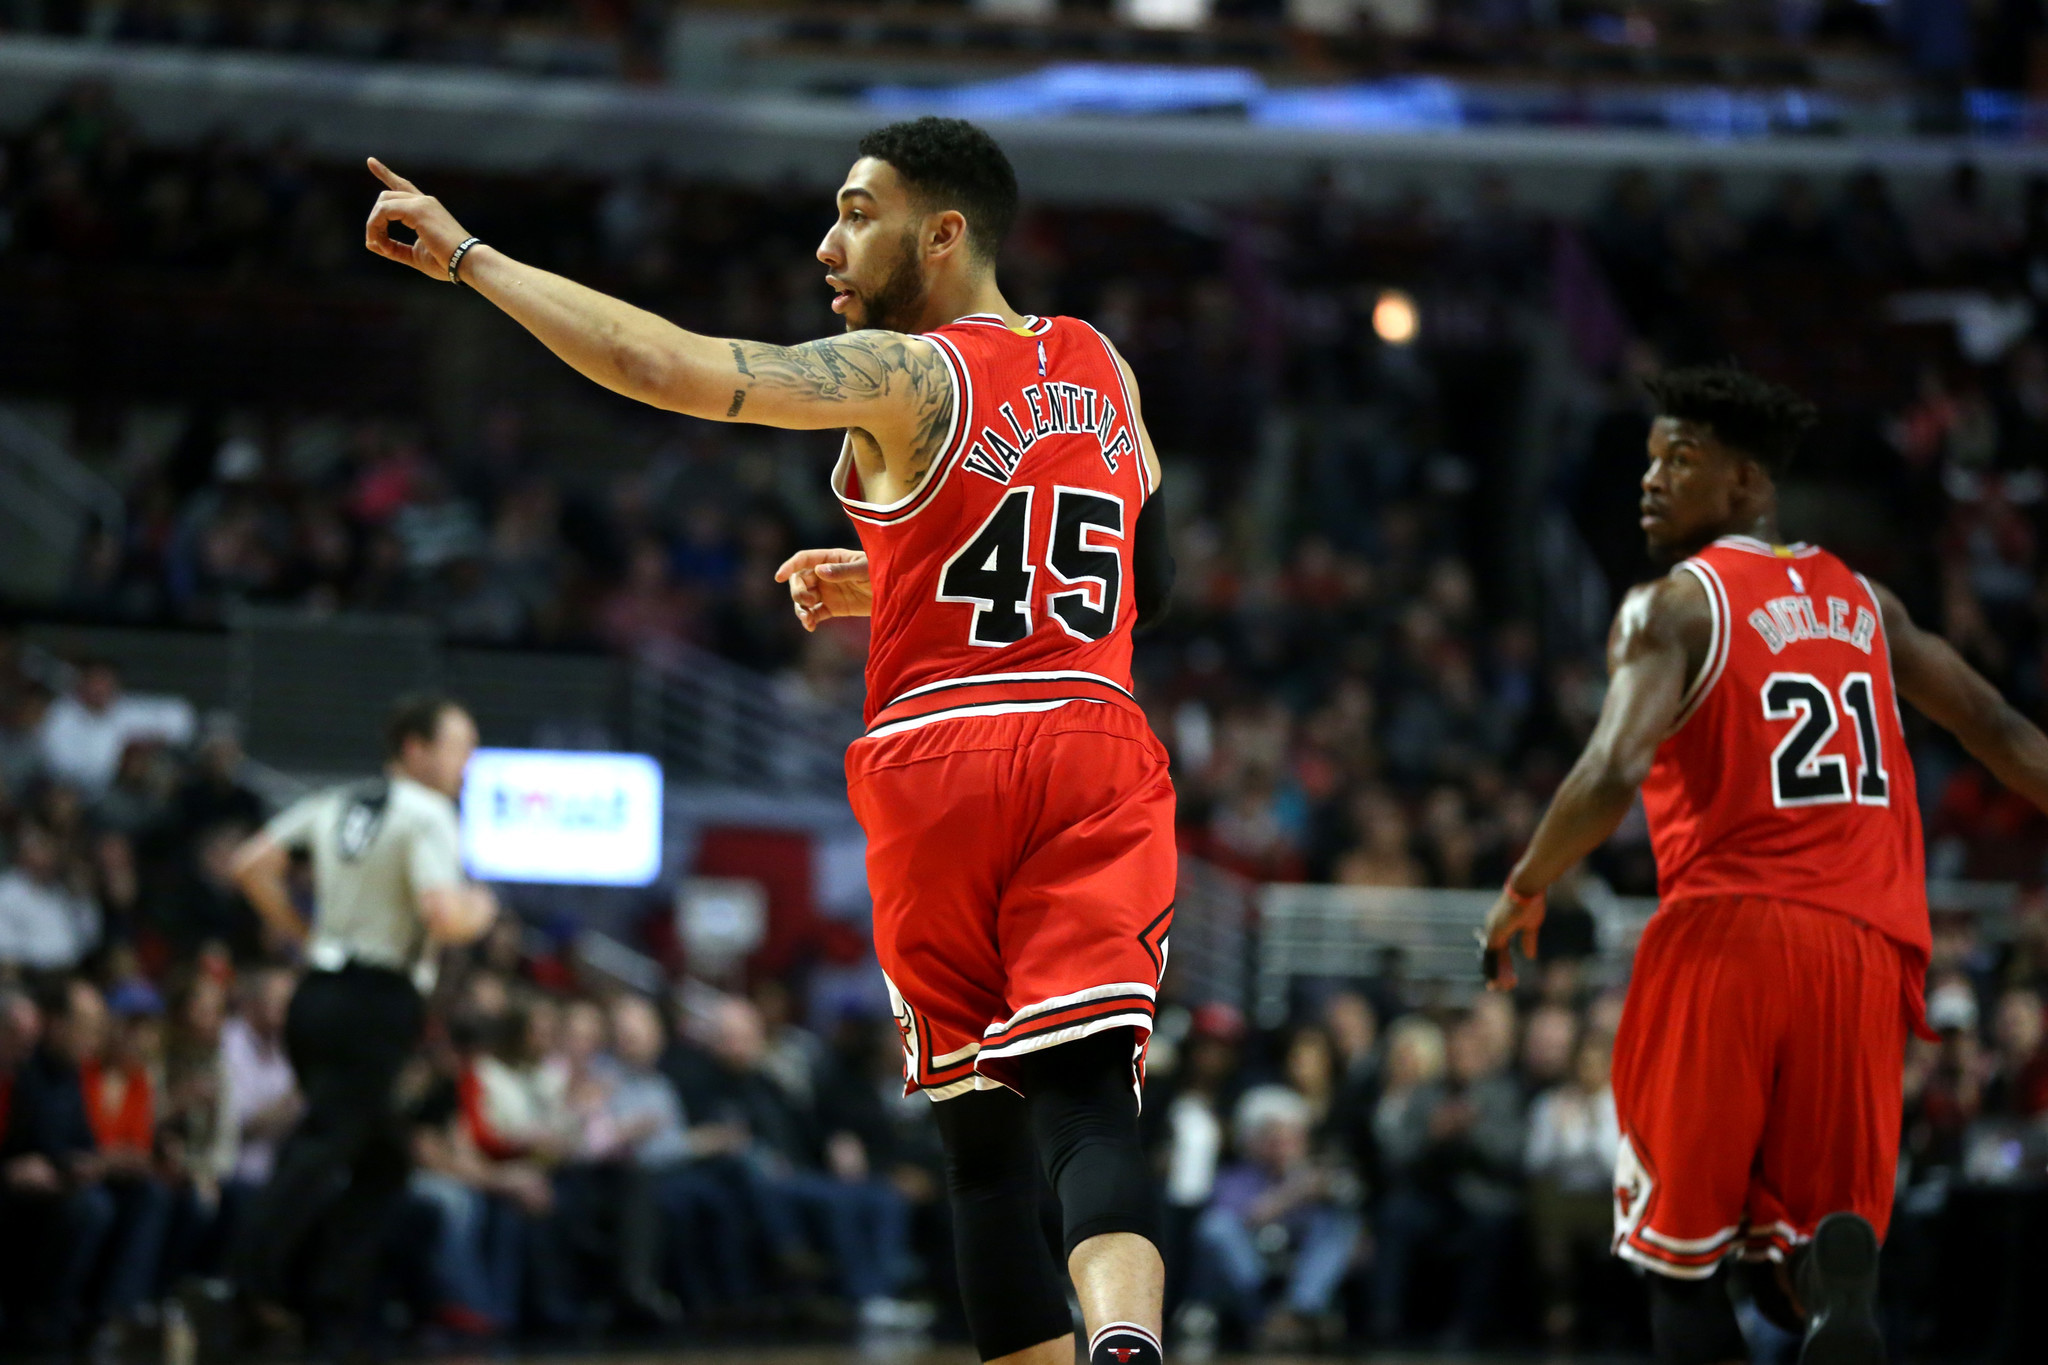 Upbeat, Poised Denzel Valentine Looks Forward To Bigger Role Next Season    Chicago Tribune